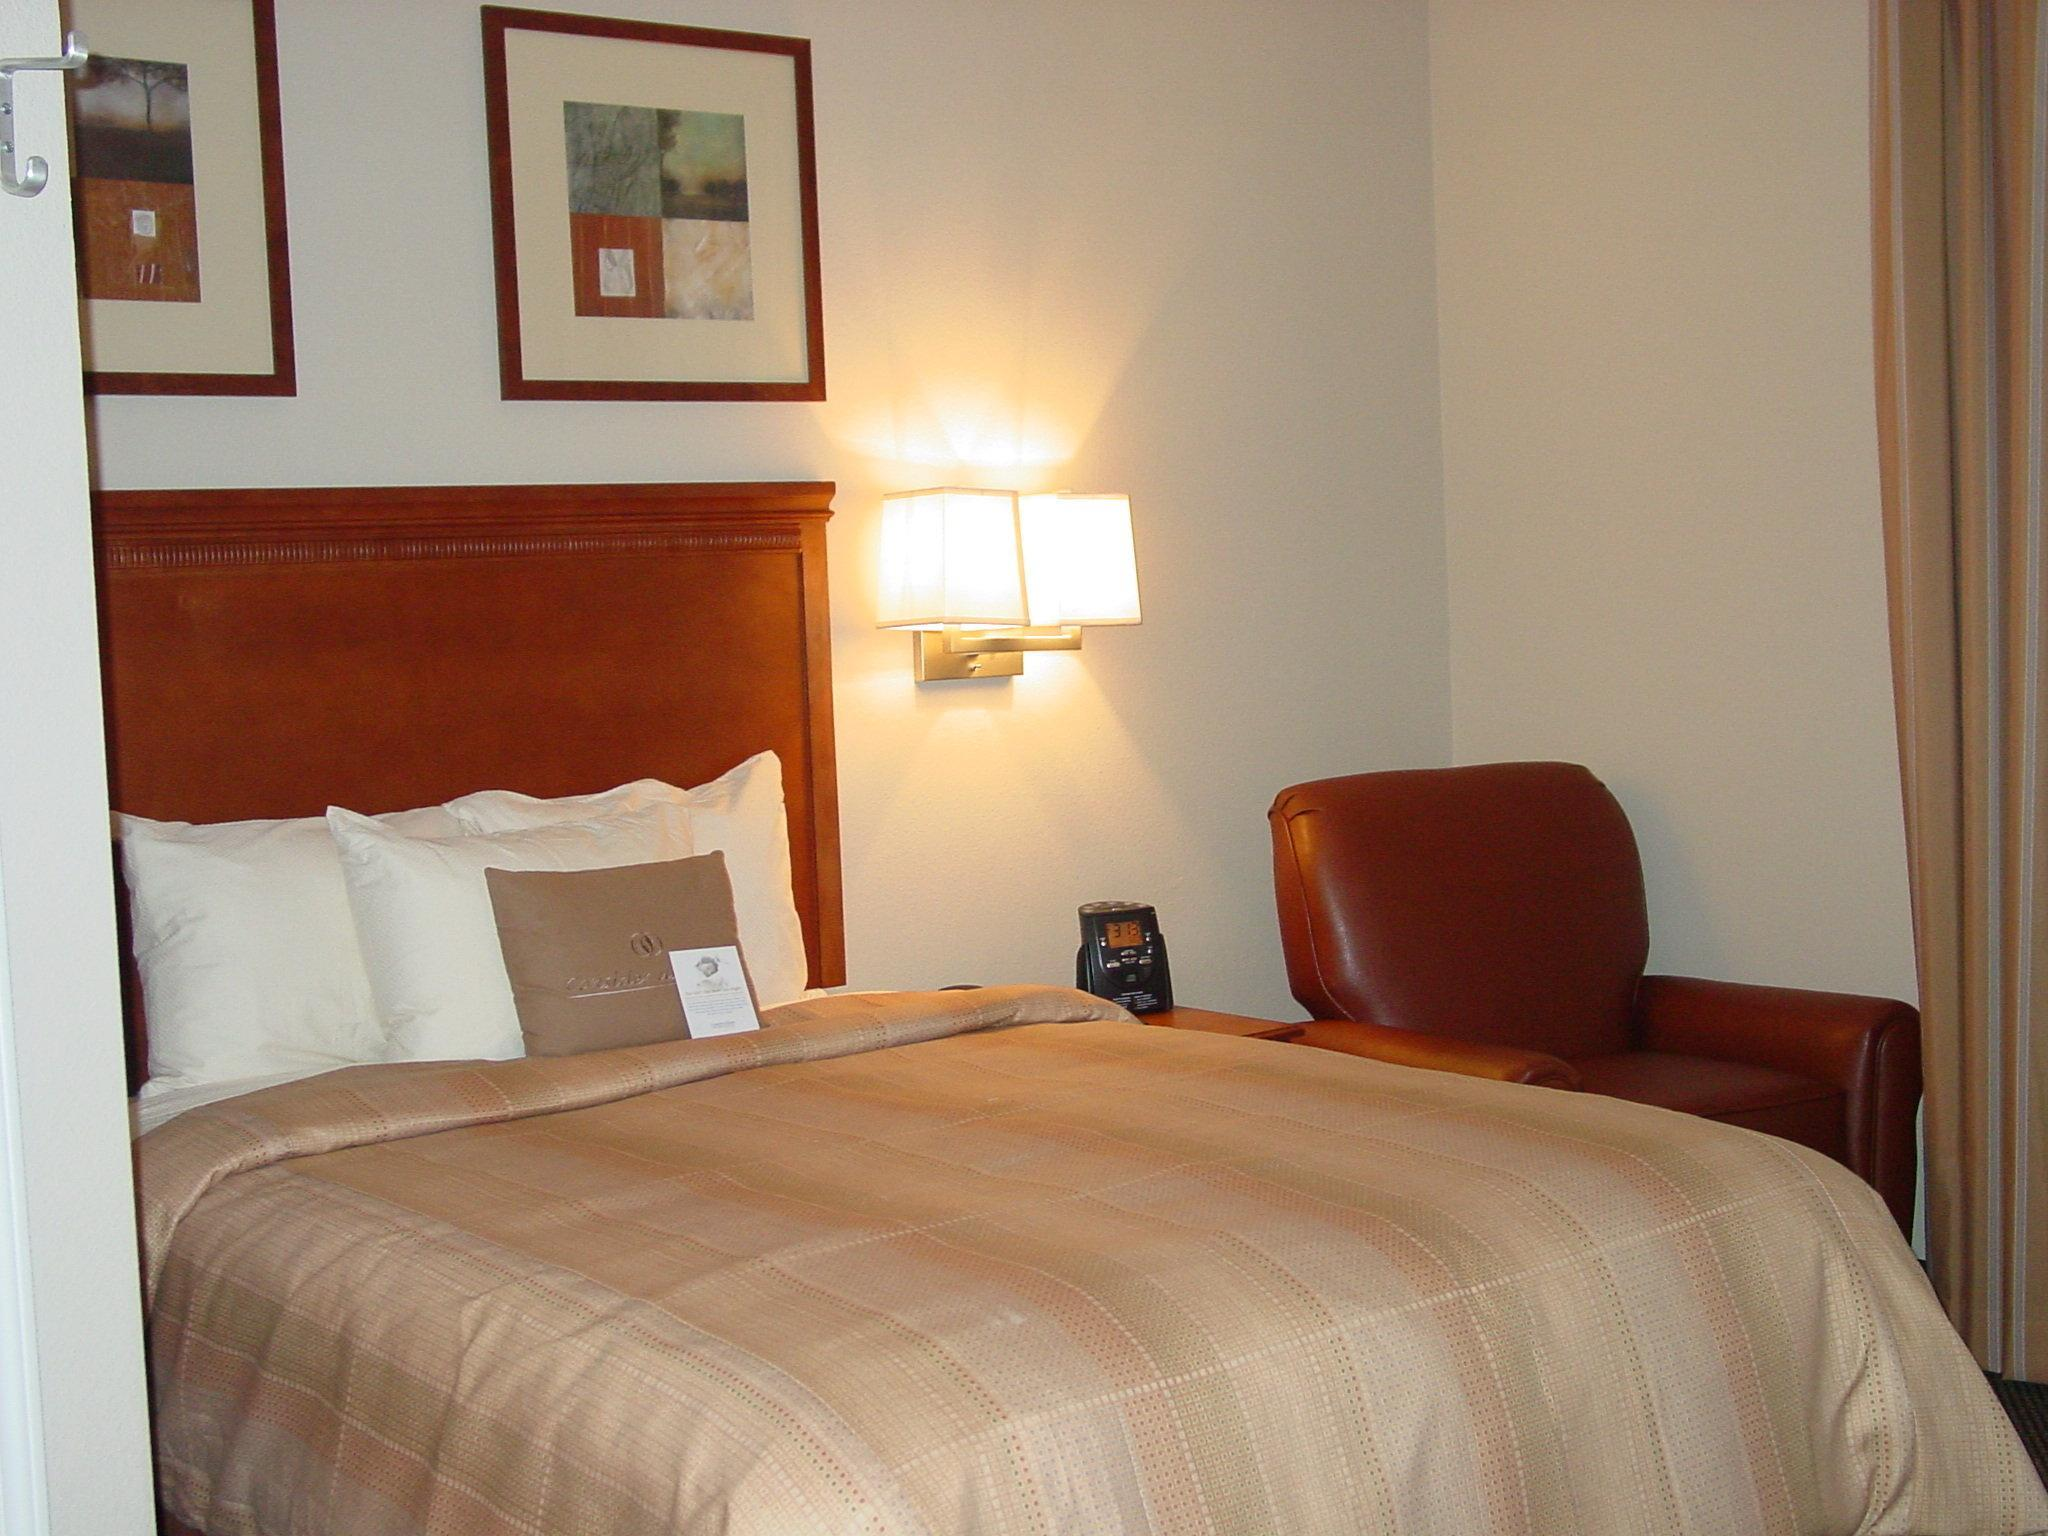 Candlewood Suites Dfw South Hotel In Dallas Tx Room